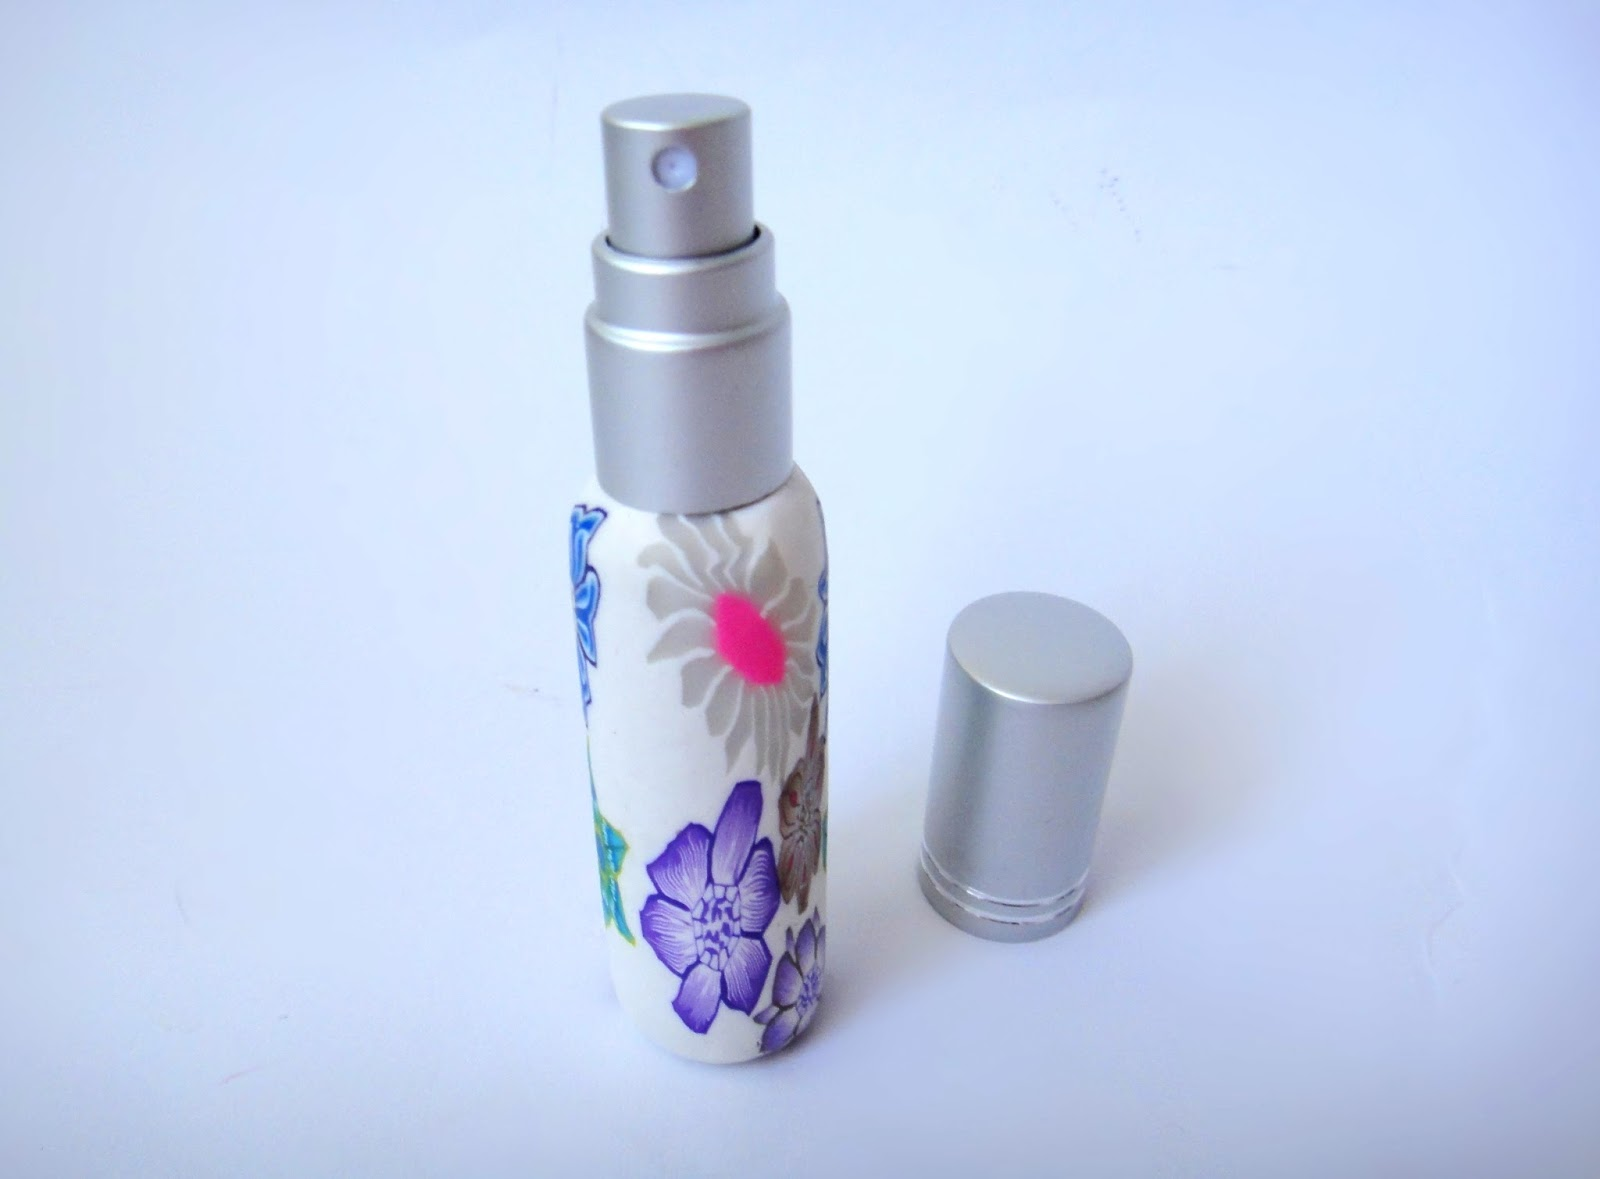 http://www.bornprettystore.com/10ml-floral-portable-perfume-bottle-spray-refillable-bottlerandom-color-p-16039.html